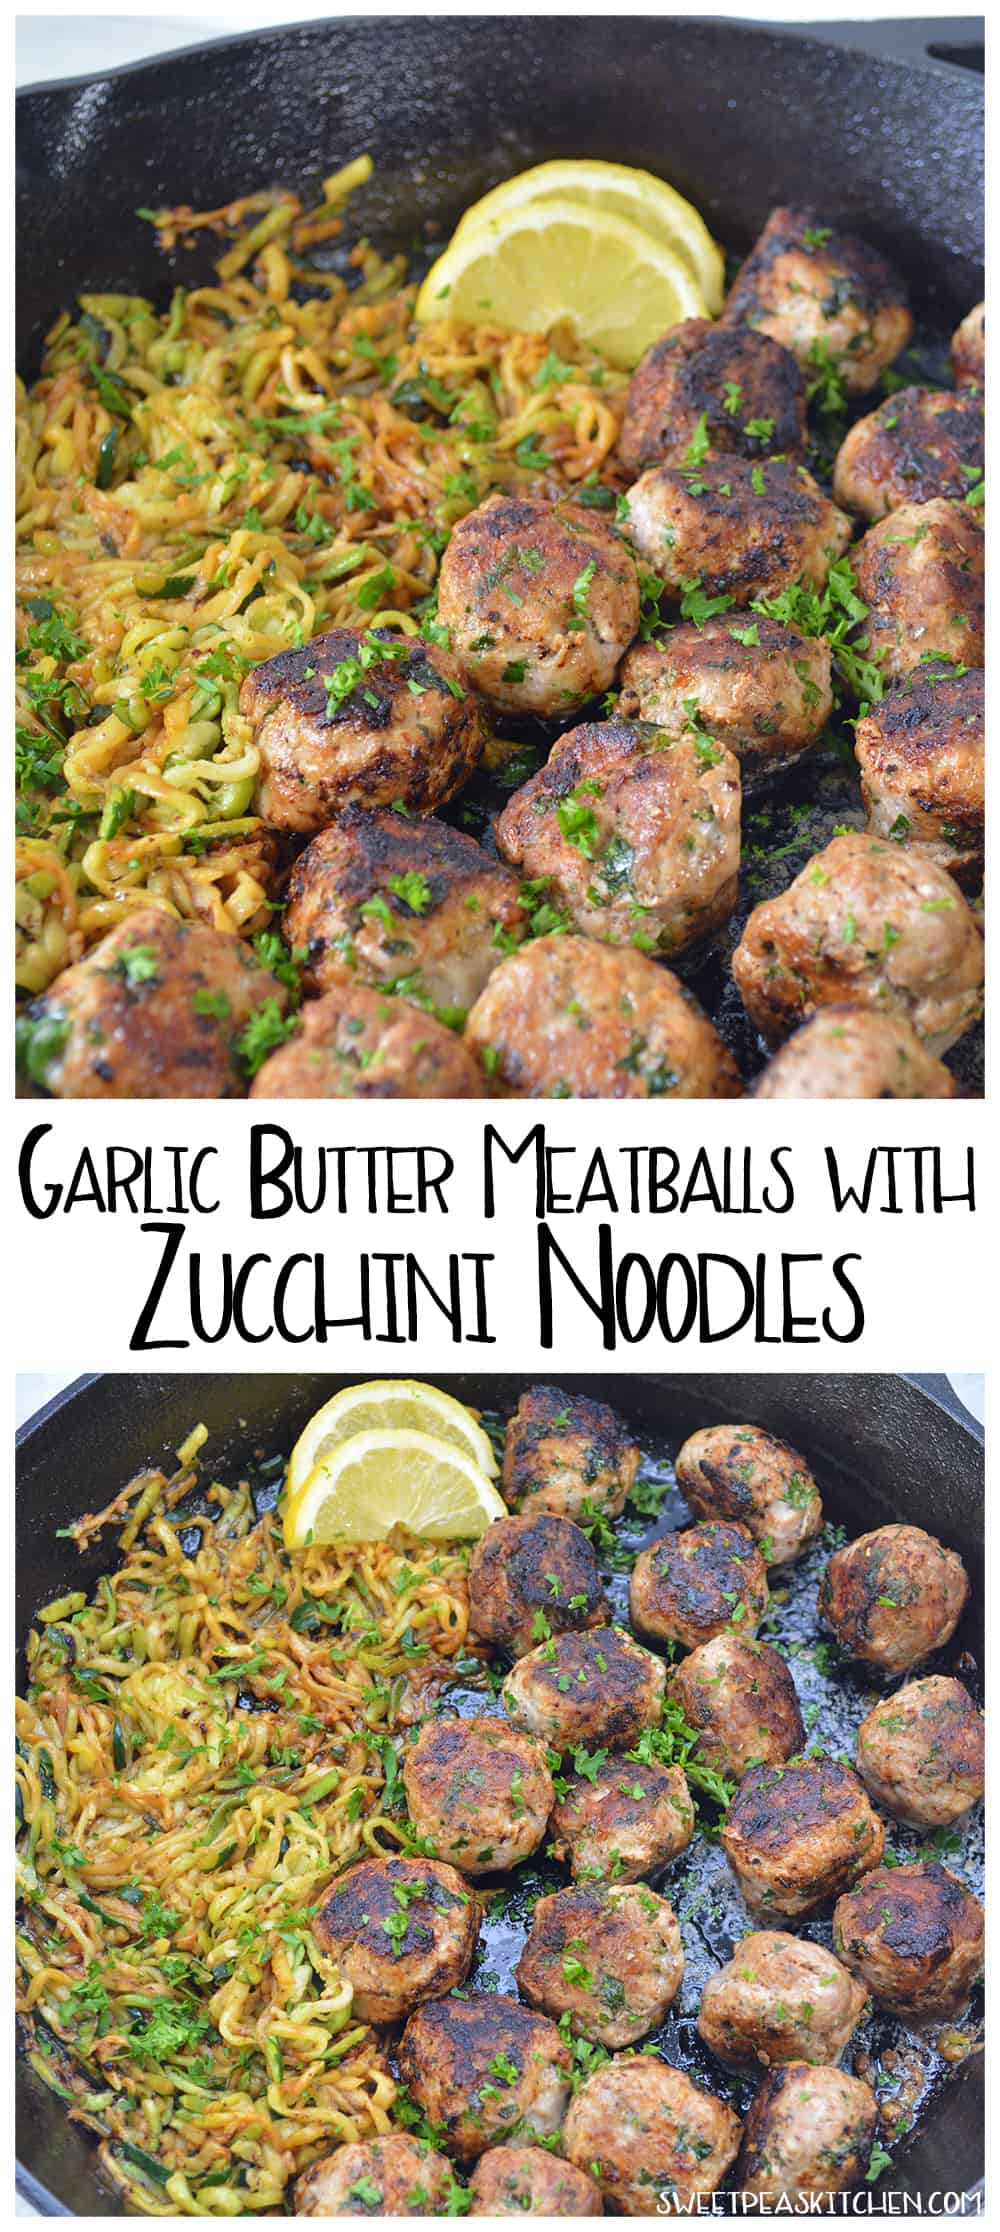 Garlic Butter Meatballs with Zucchini Noodles